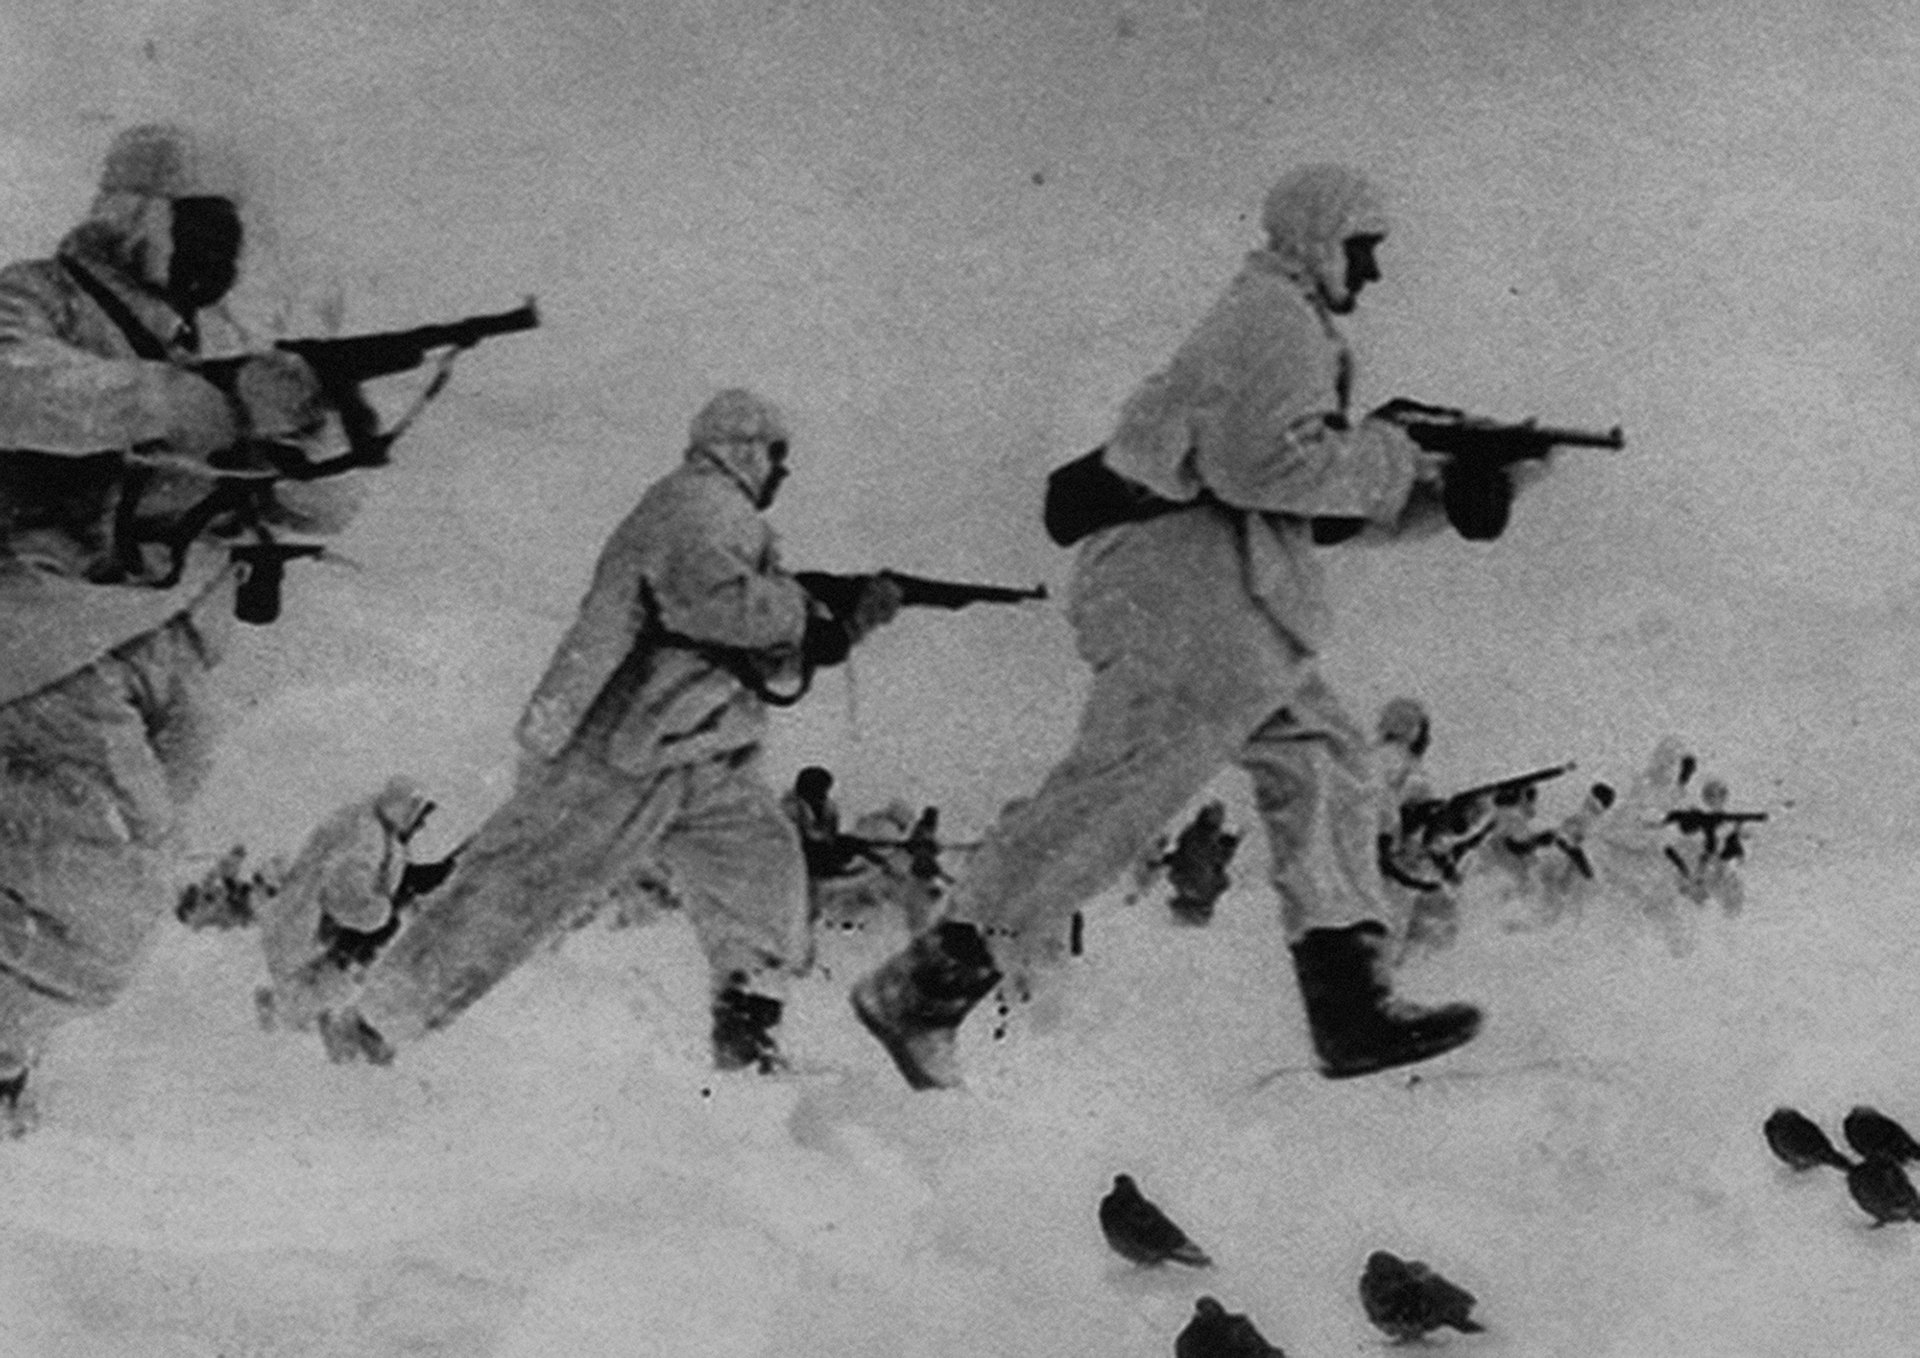 Spy pigeons on the battlefield during World War II, 1943. The memoirs of Yan Khtovich, 2015-2017